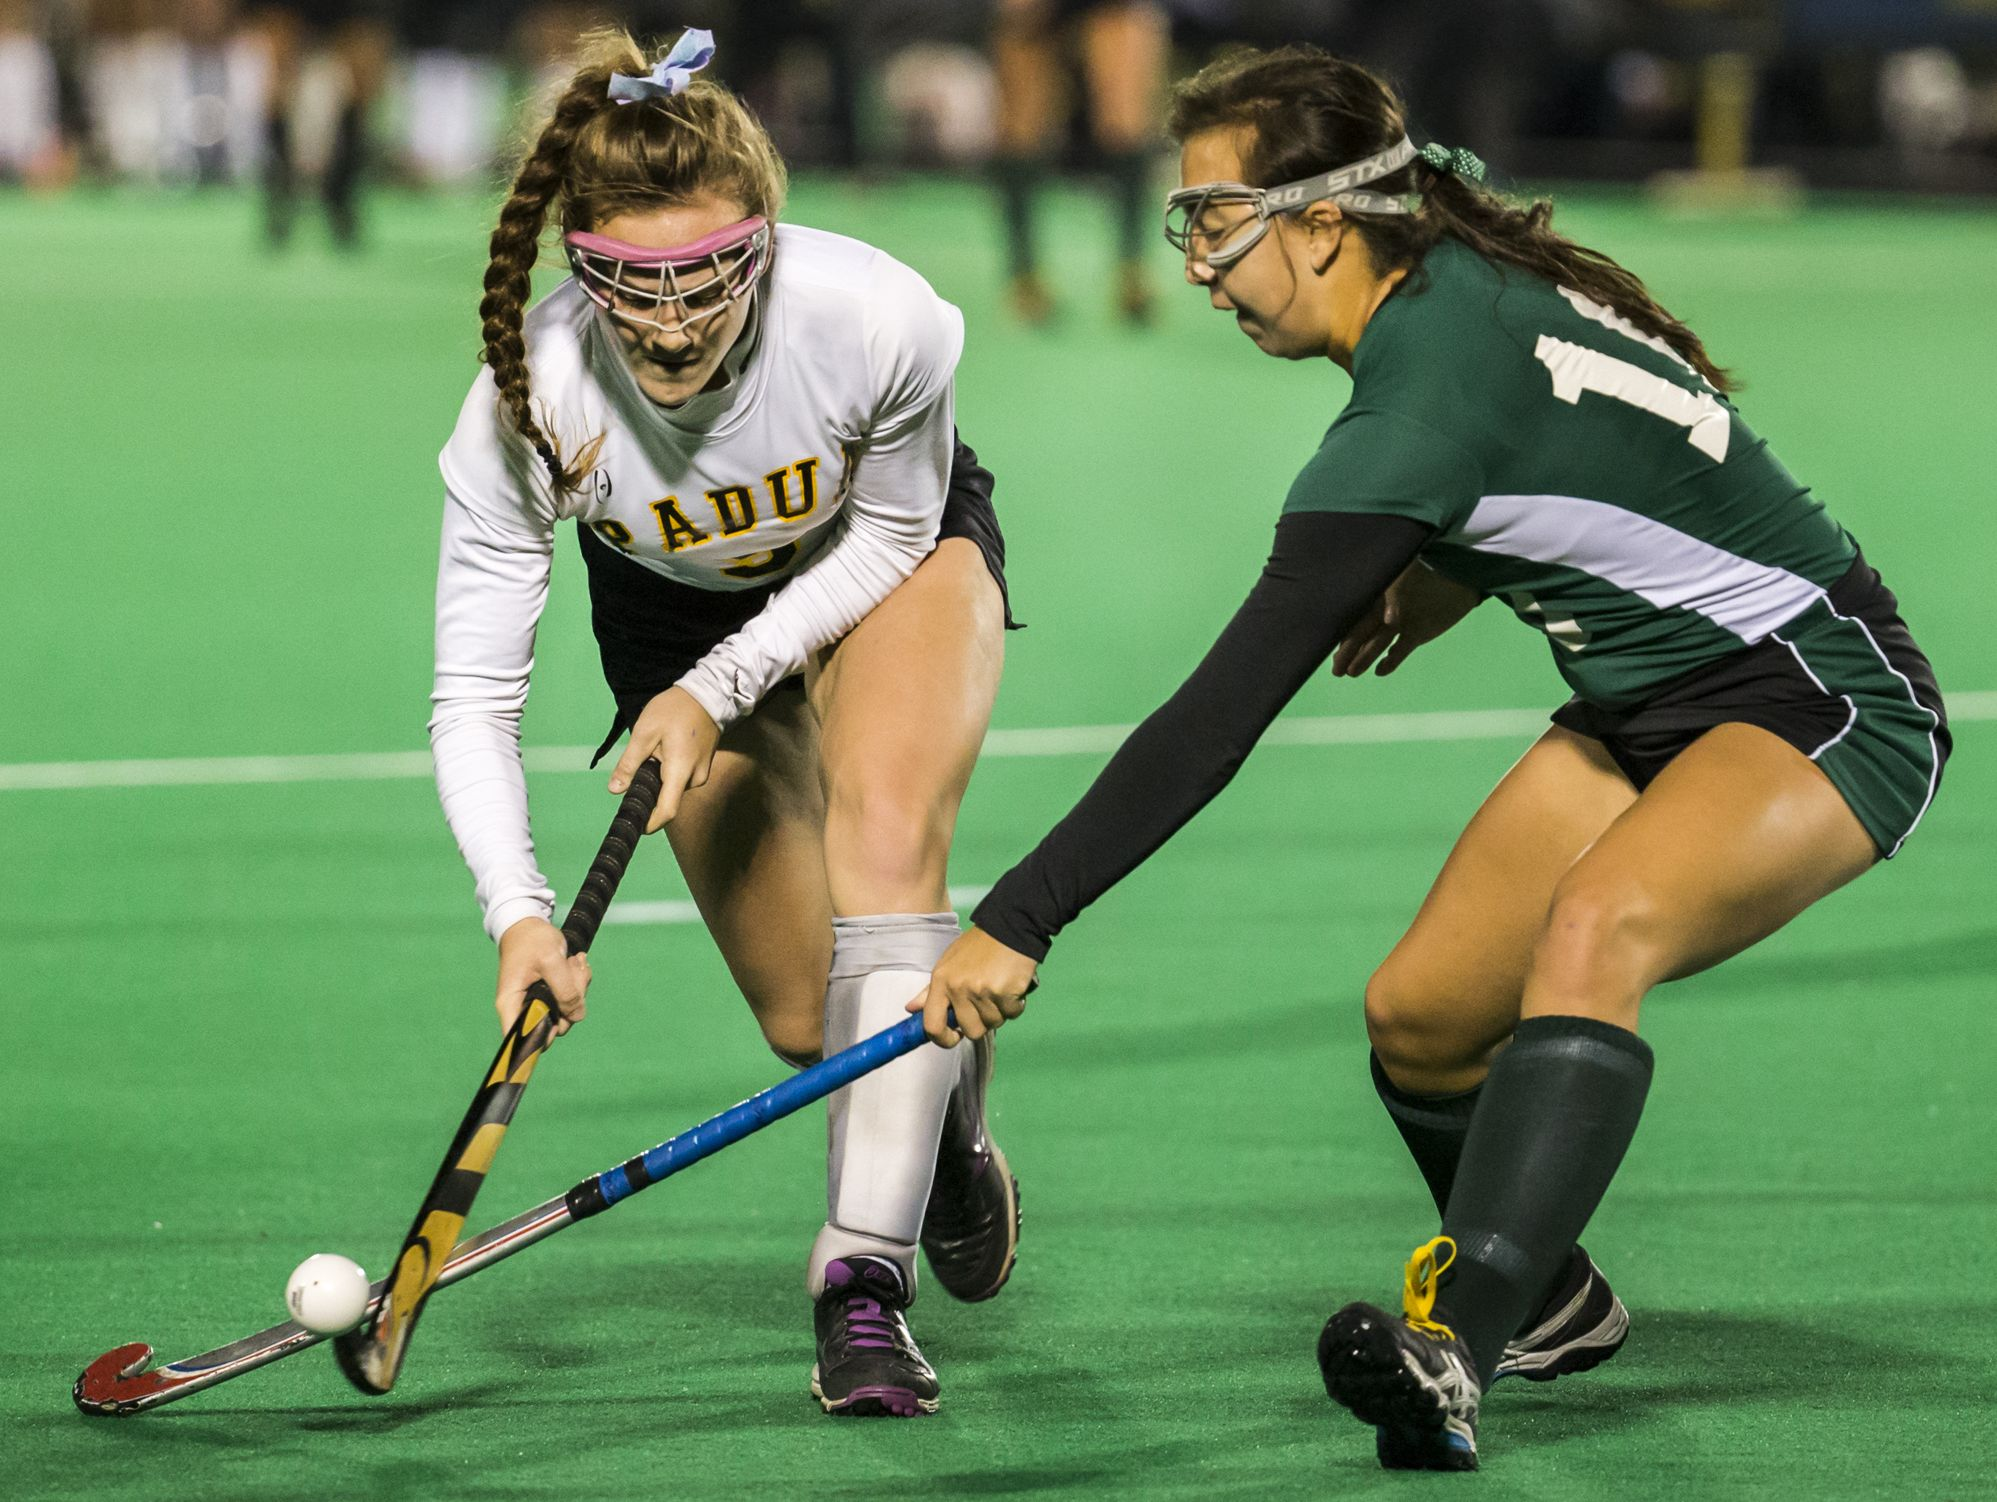 Padua's Kathleen Melia (left) tries to work past Tower Hill's Julia Smith (right) in the first half of Tower Hill's 4-0 win over Padua in their DIAA state tournament semi-final game at the University of Delaware in Newark on Tuesday night.